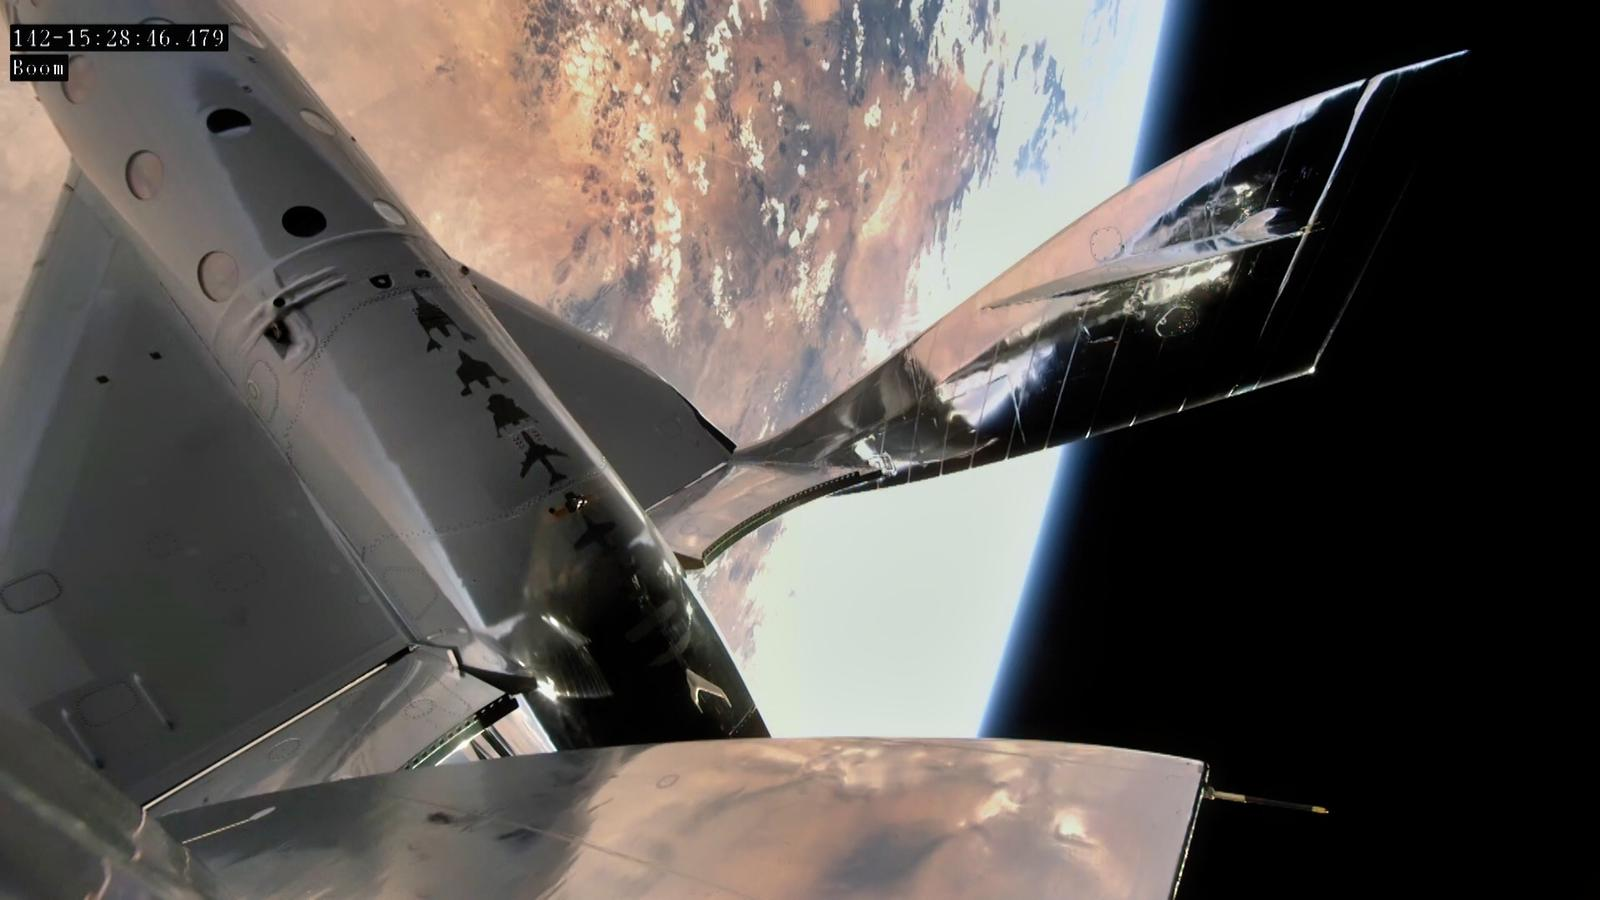 Virgin Galactic's SpaceShipTwo has flown to the edge of space